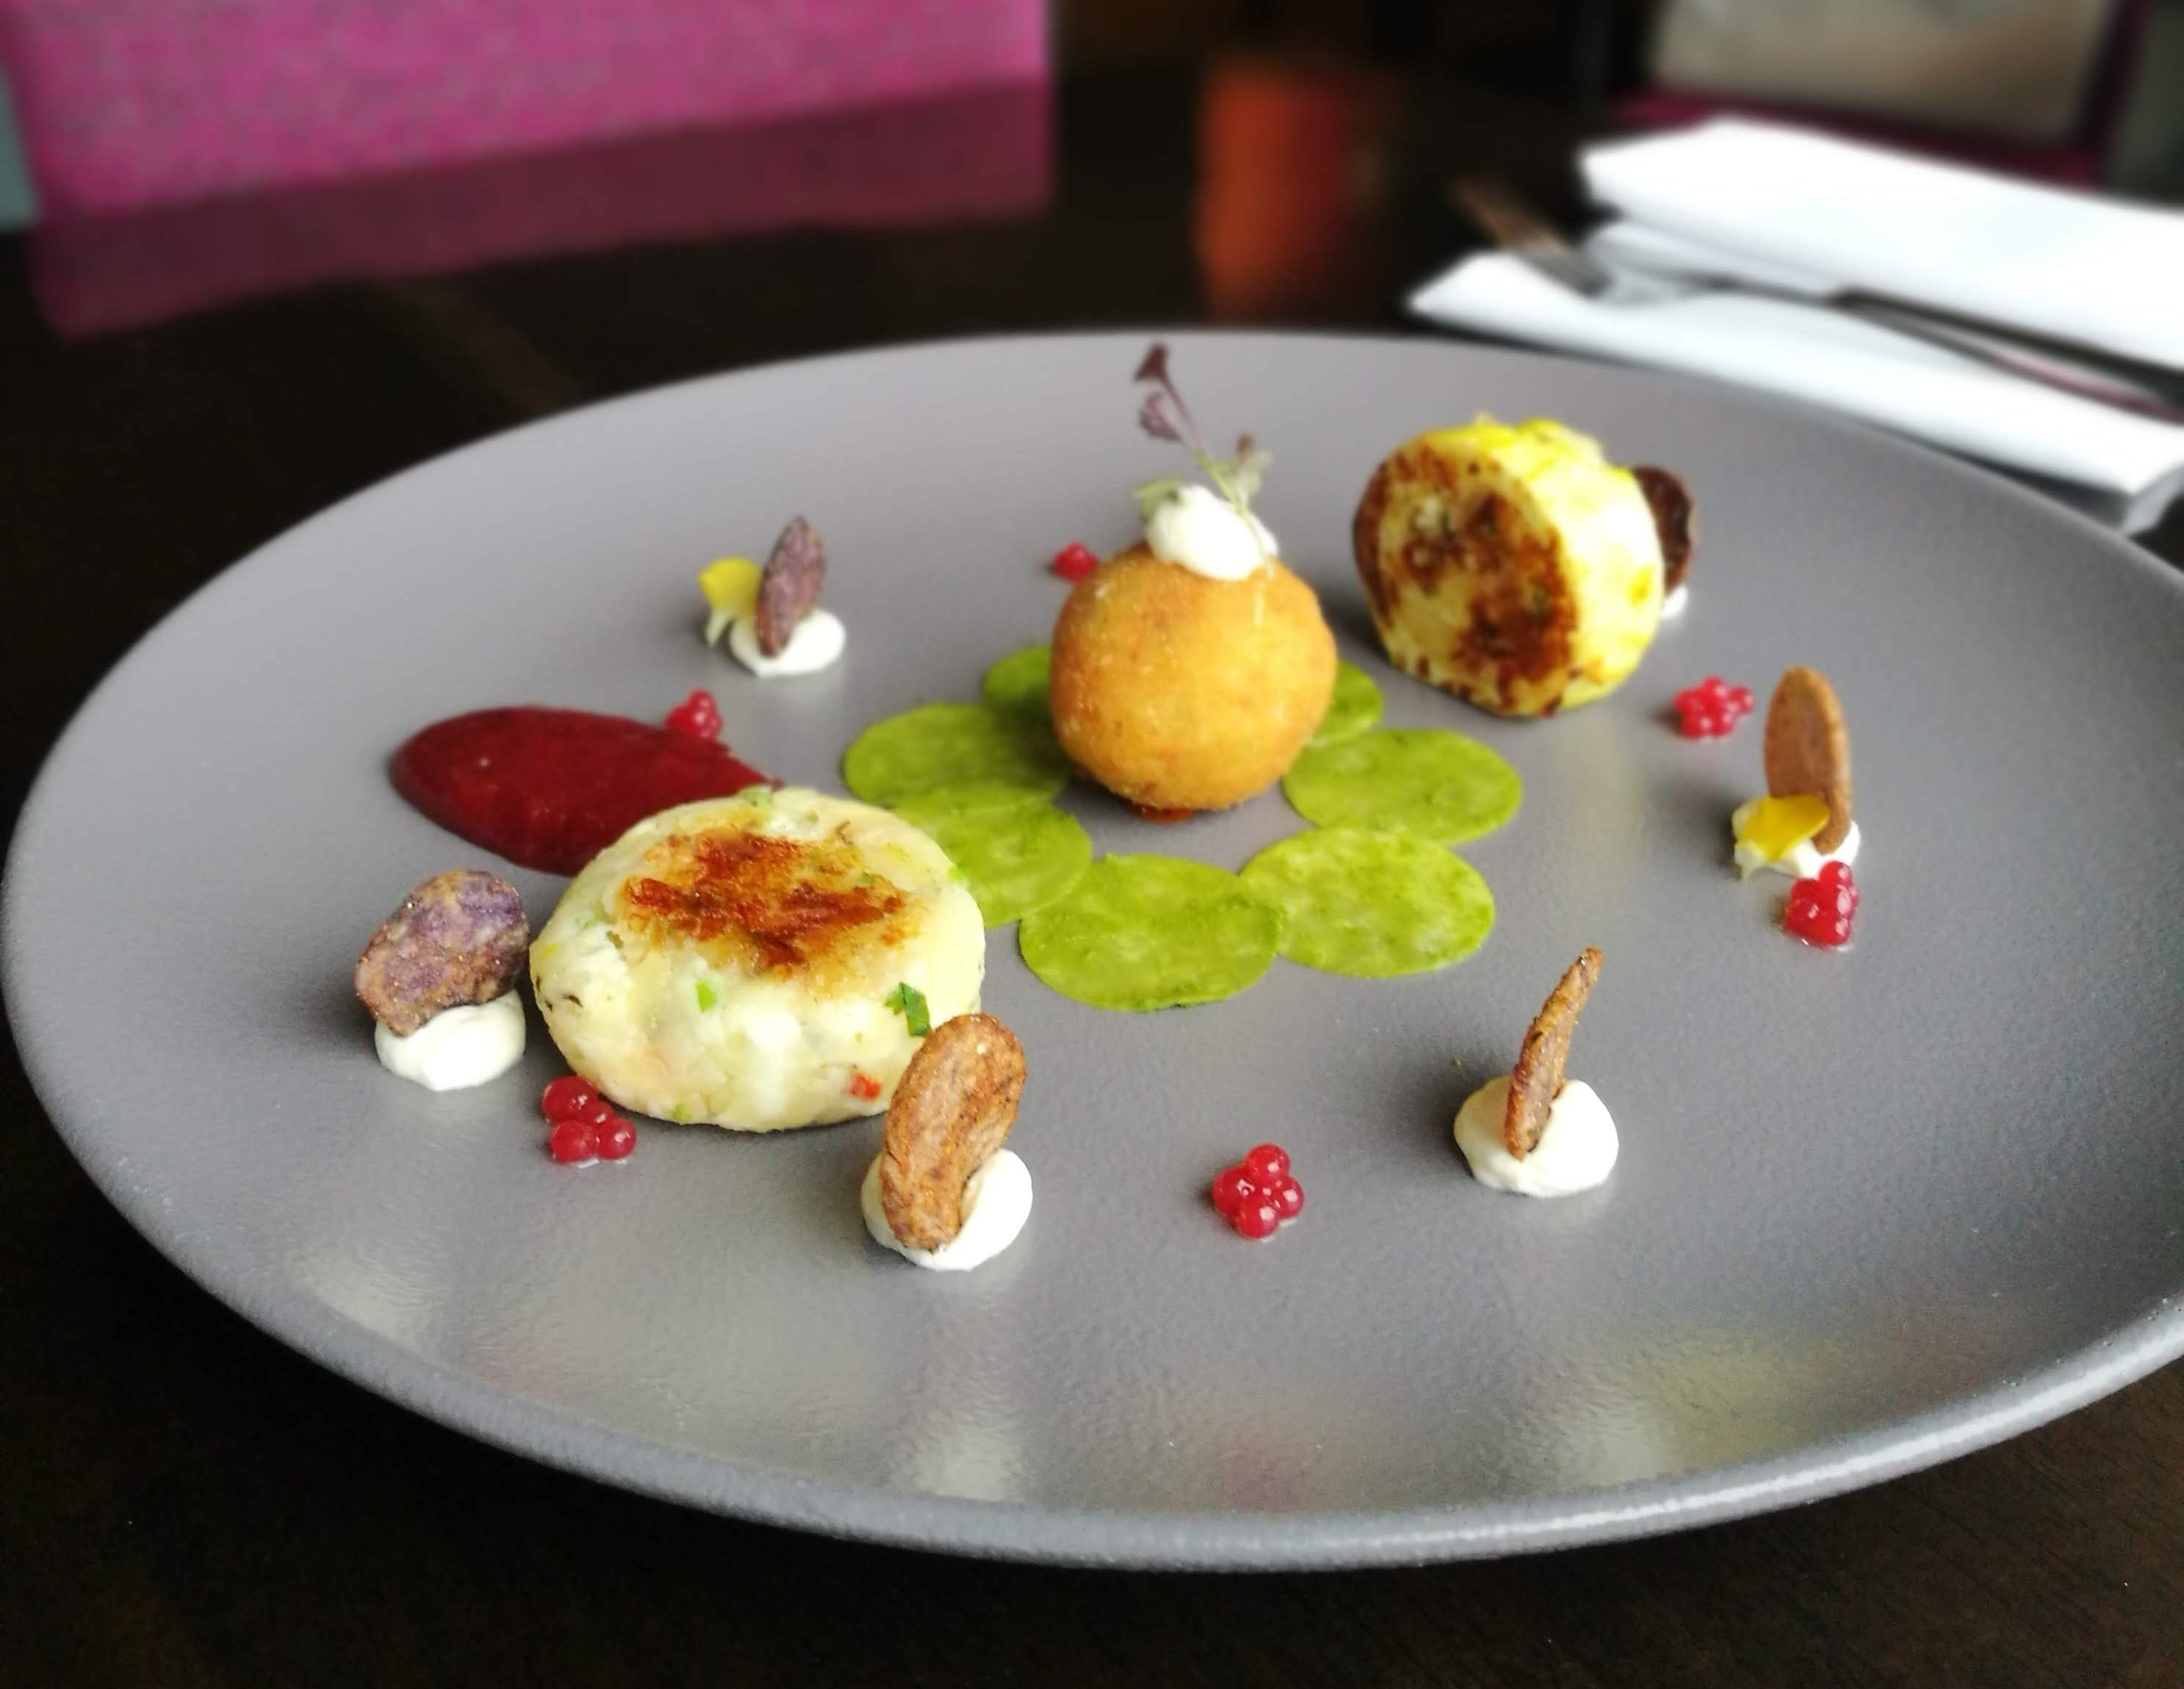 St. TOLA GOAT'S CHEESE TIKKI WITH PLUM CHUTNEY BY KARAN MITTAL